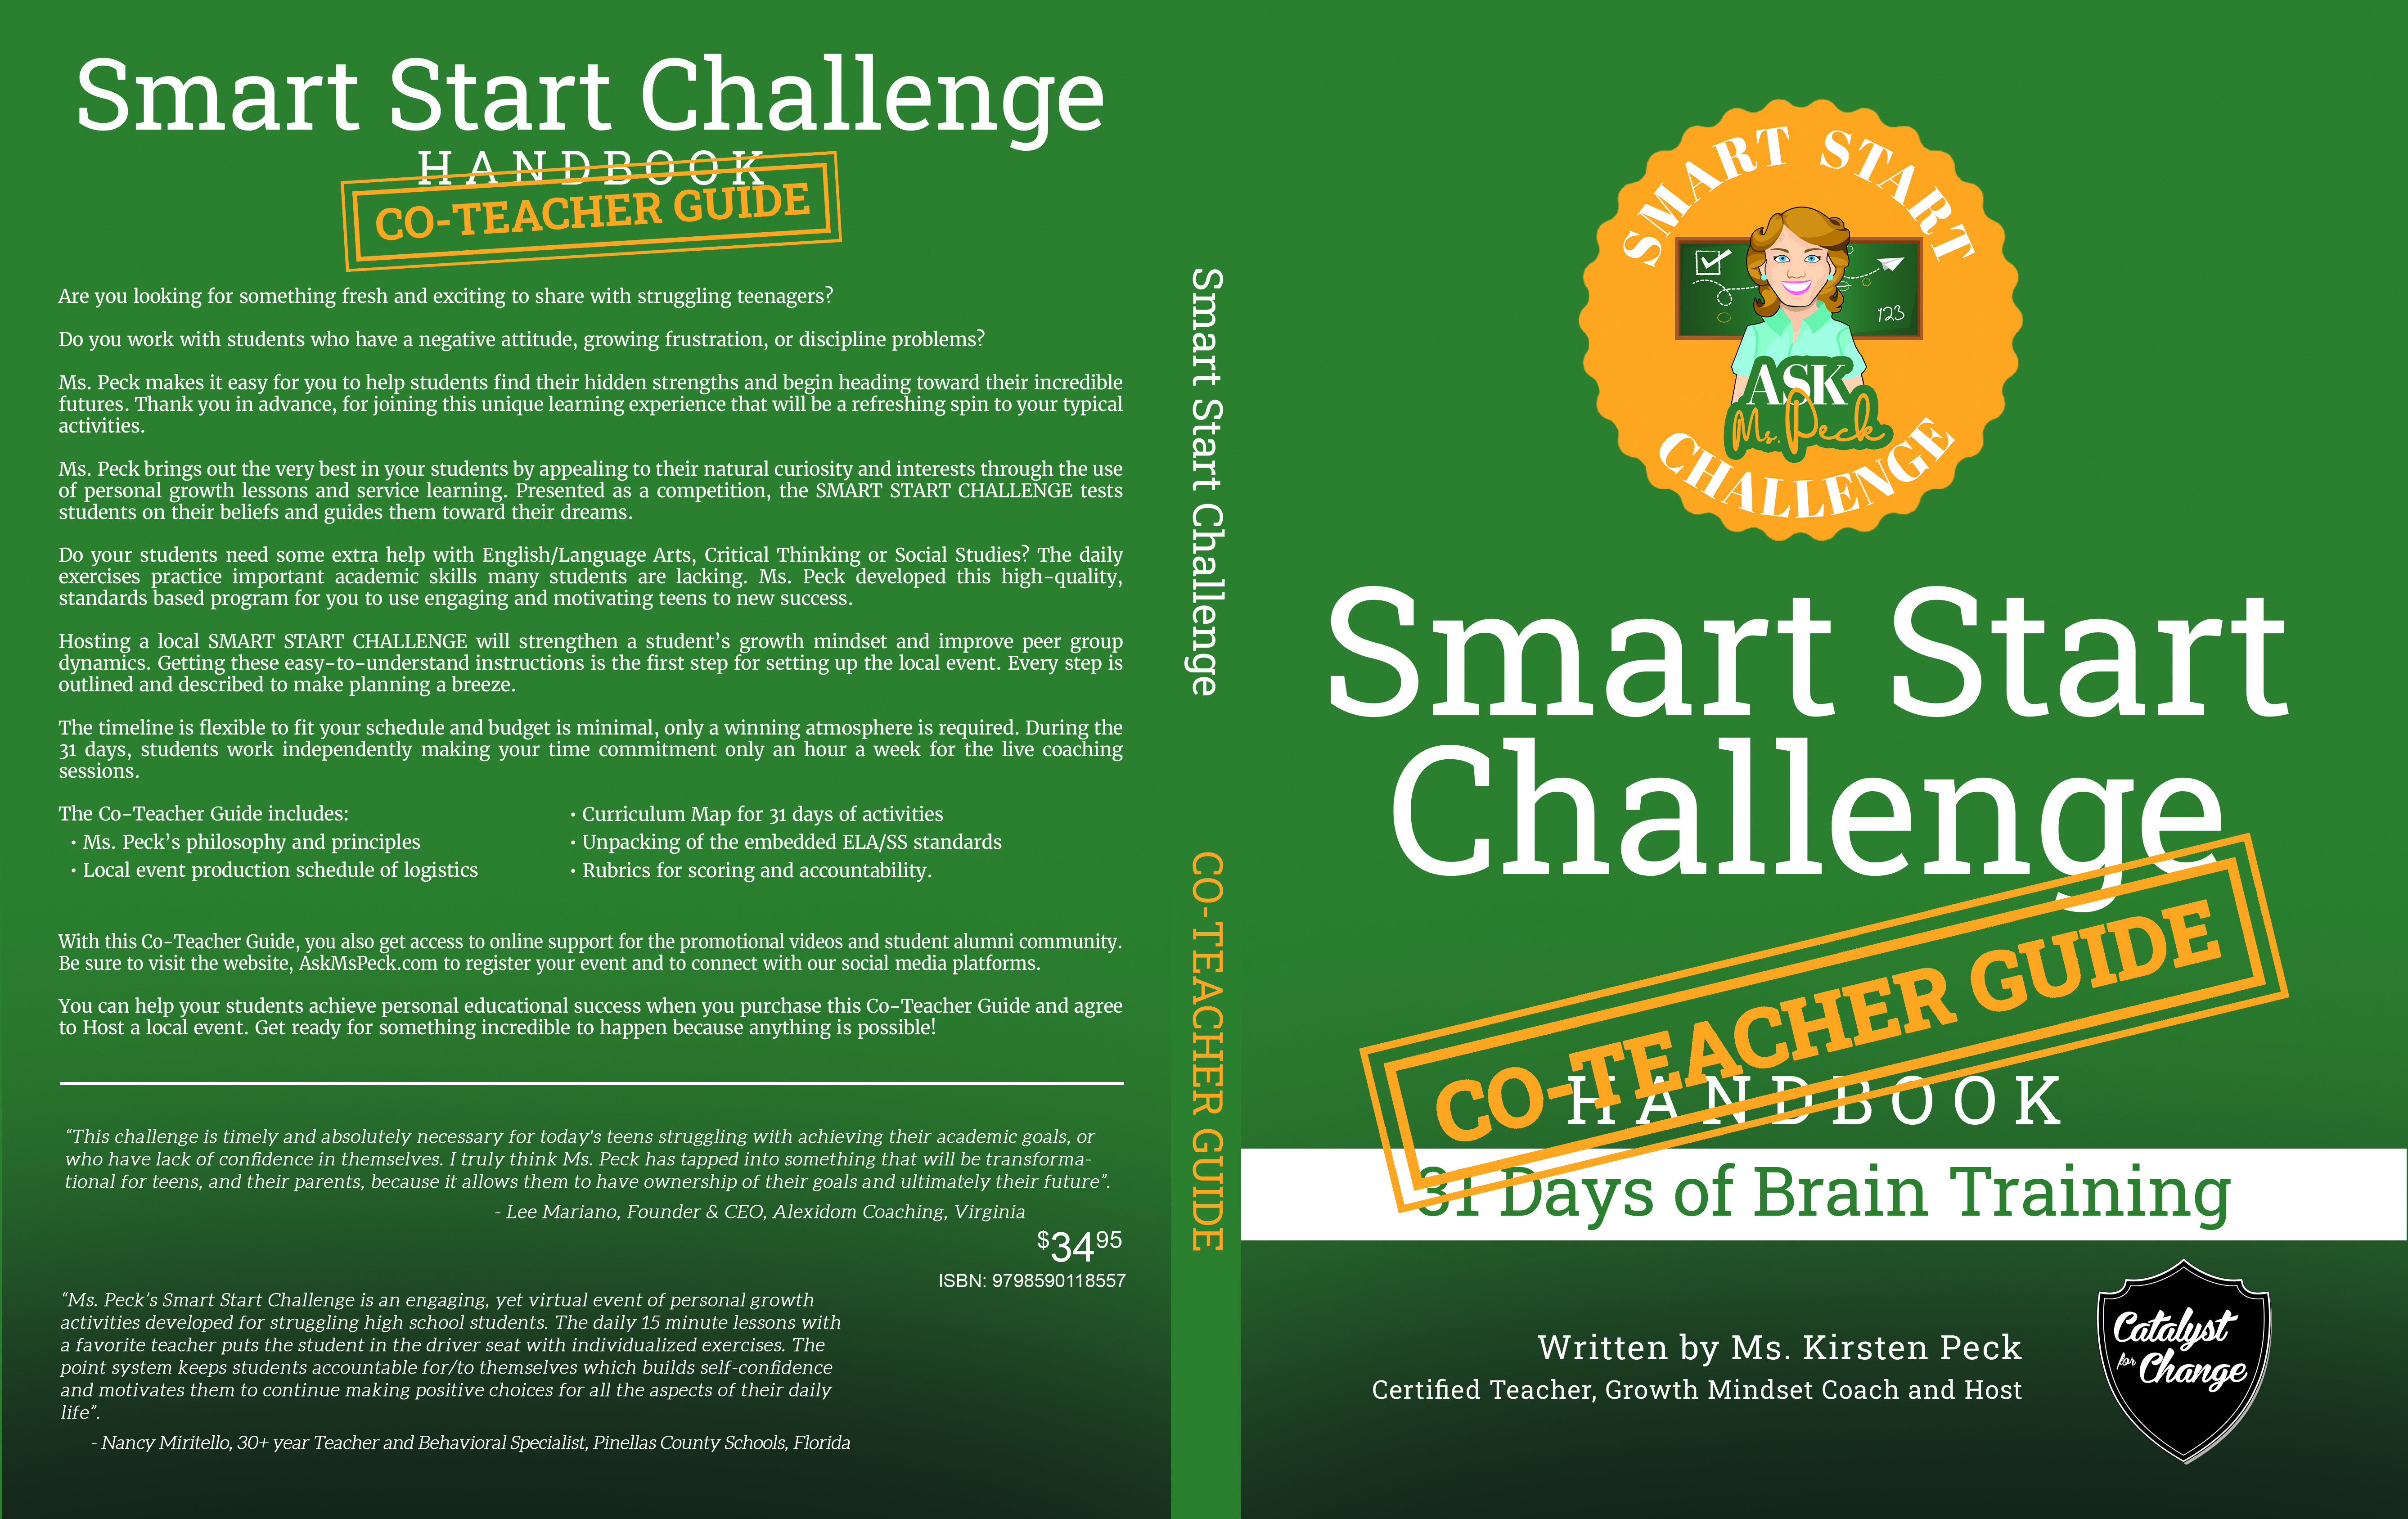 Ms. Peck Publishes Co-Teacher Guide to Smart Start Challenge Handbook, Weekly Workshop Tickets Available